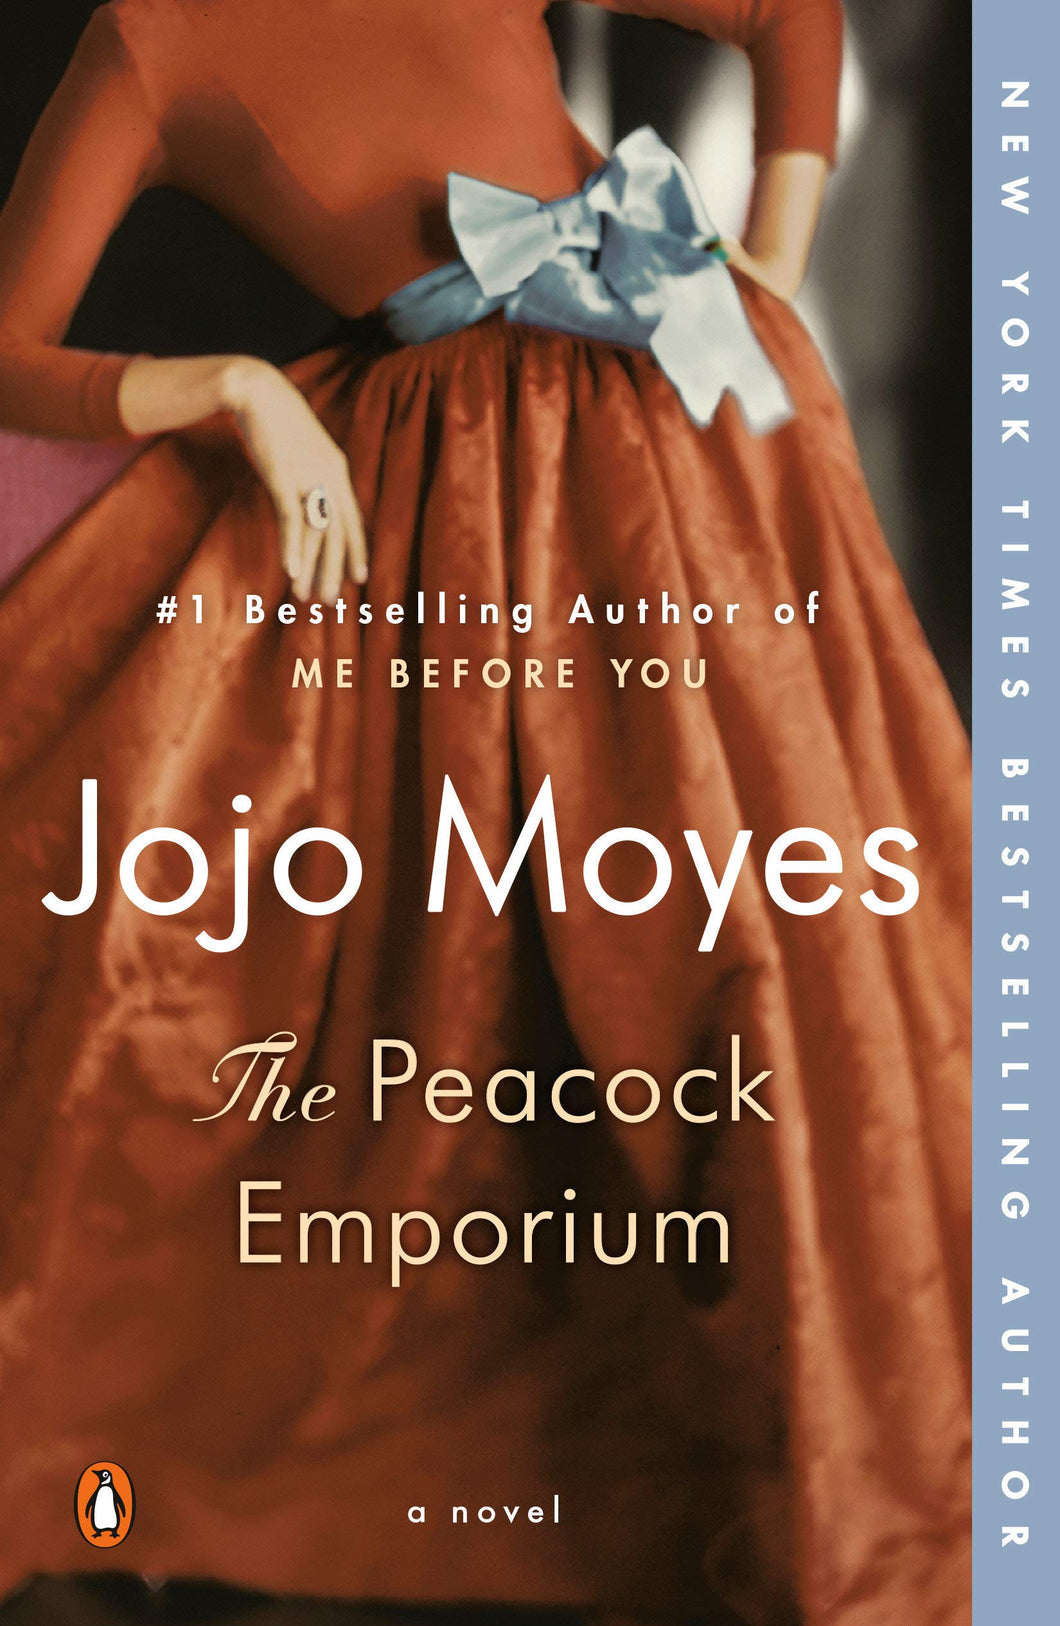 The Peacock Emporium: A Novel